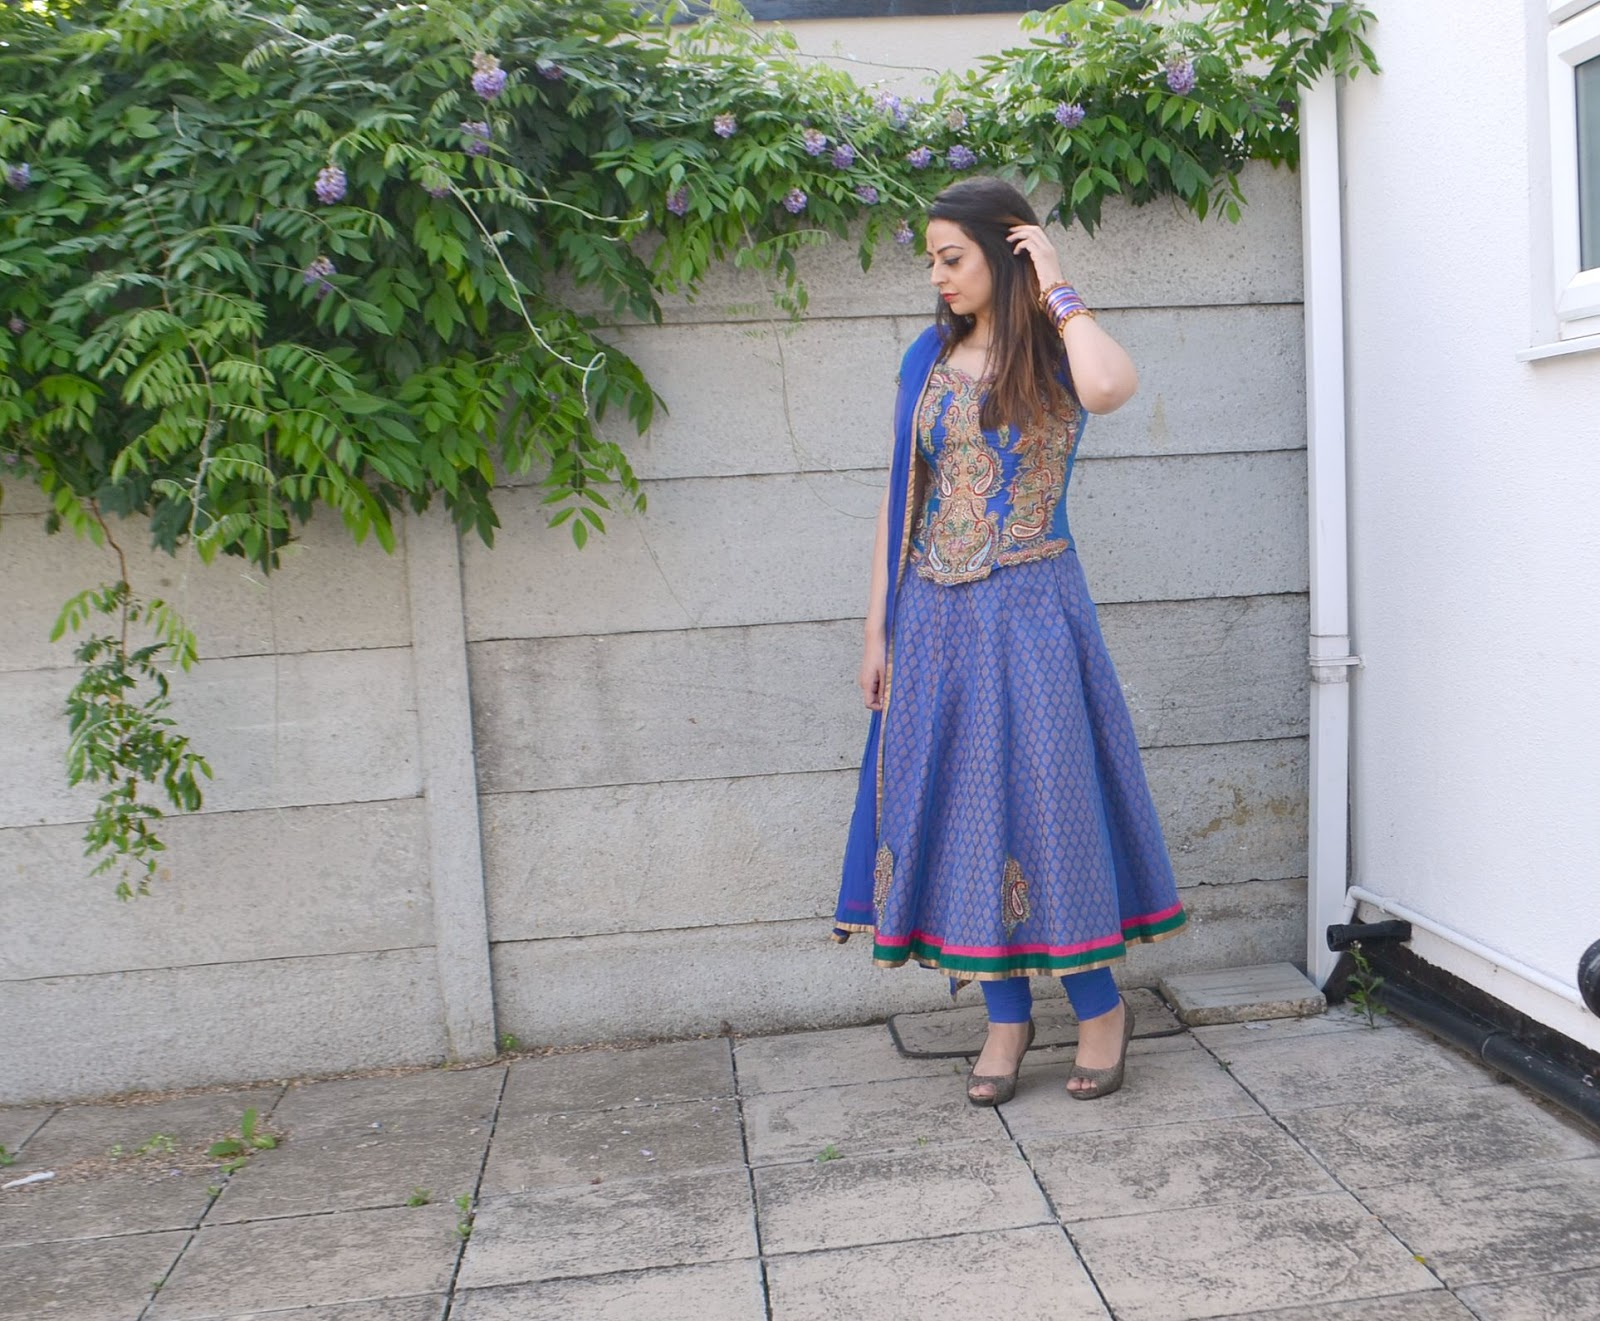 bollywood style outfit